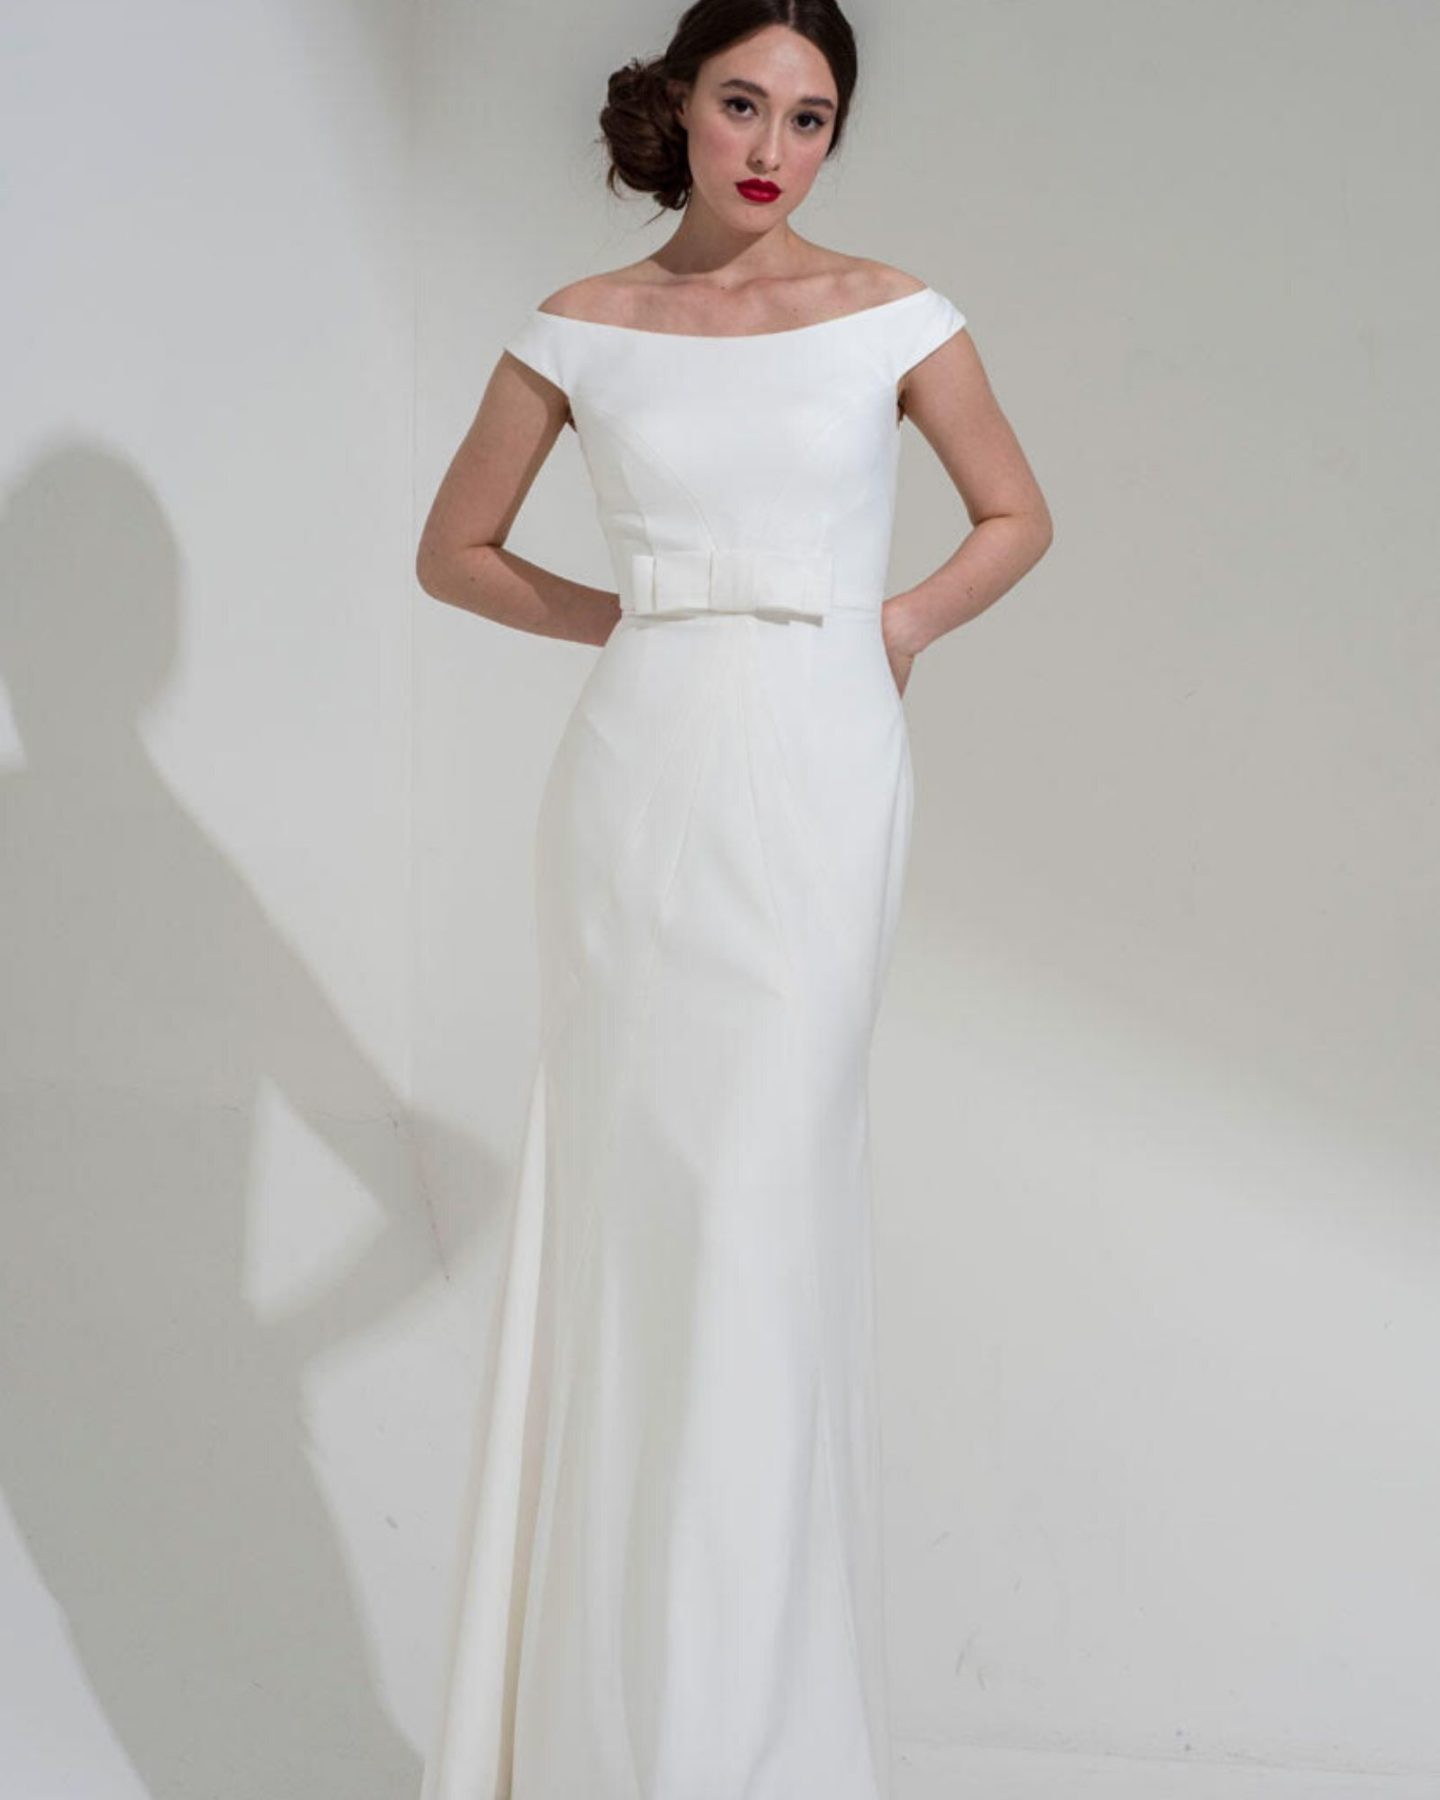 Freda Bennet wedding dresses at Boho Bride in Stratford-Upon-Avon